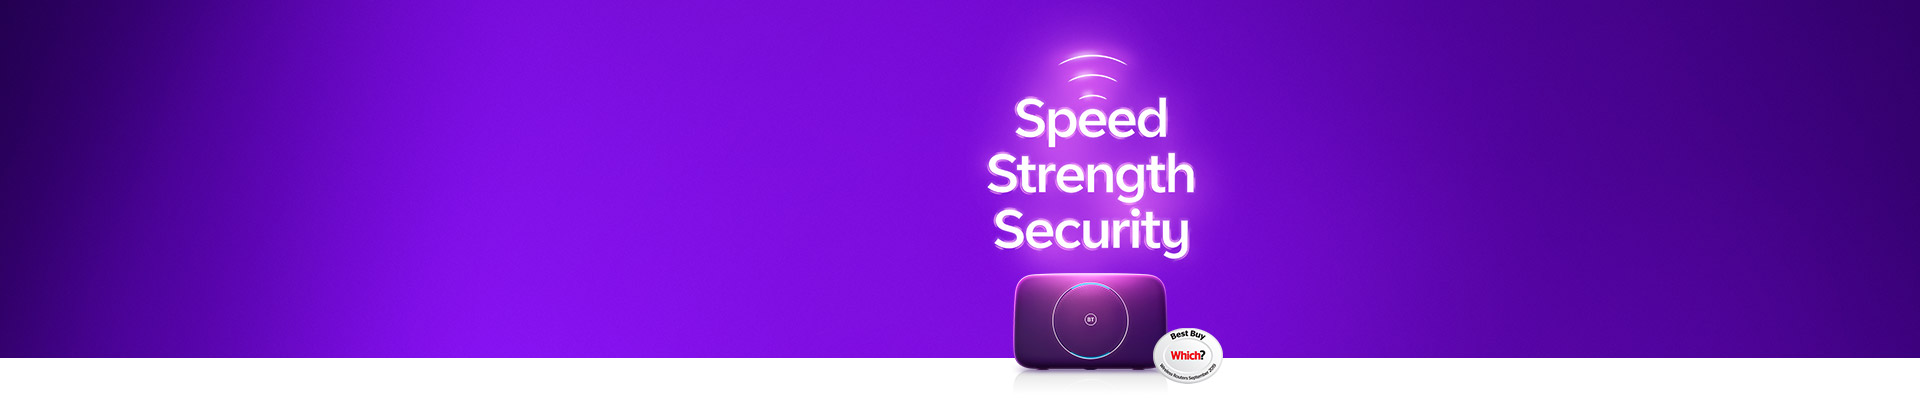 BT broadband gives you speed, strength and security